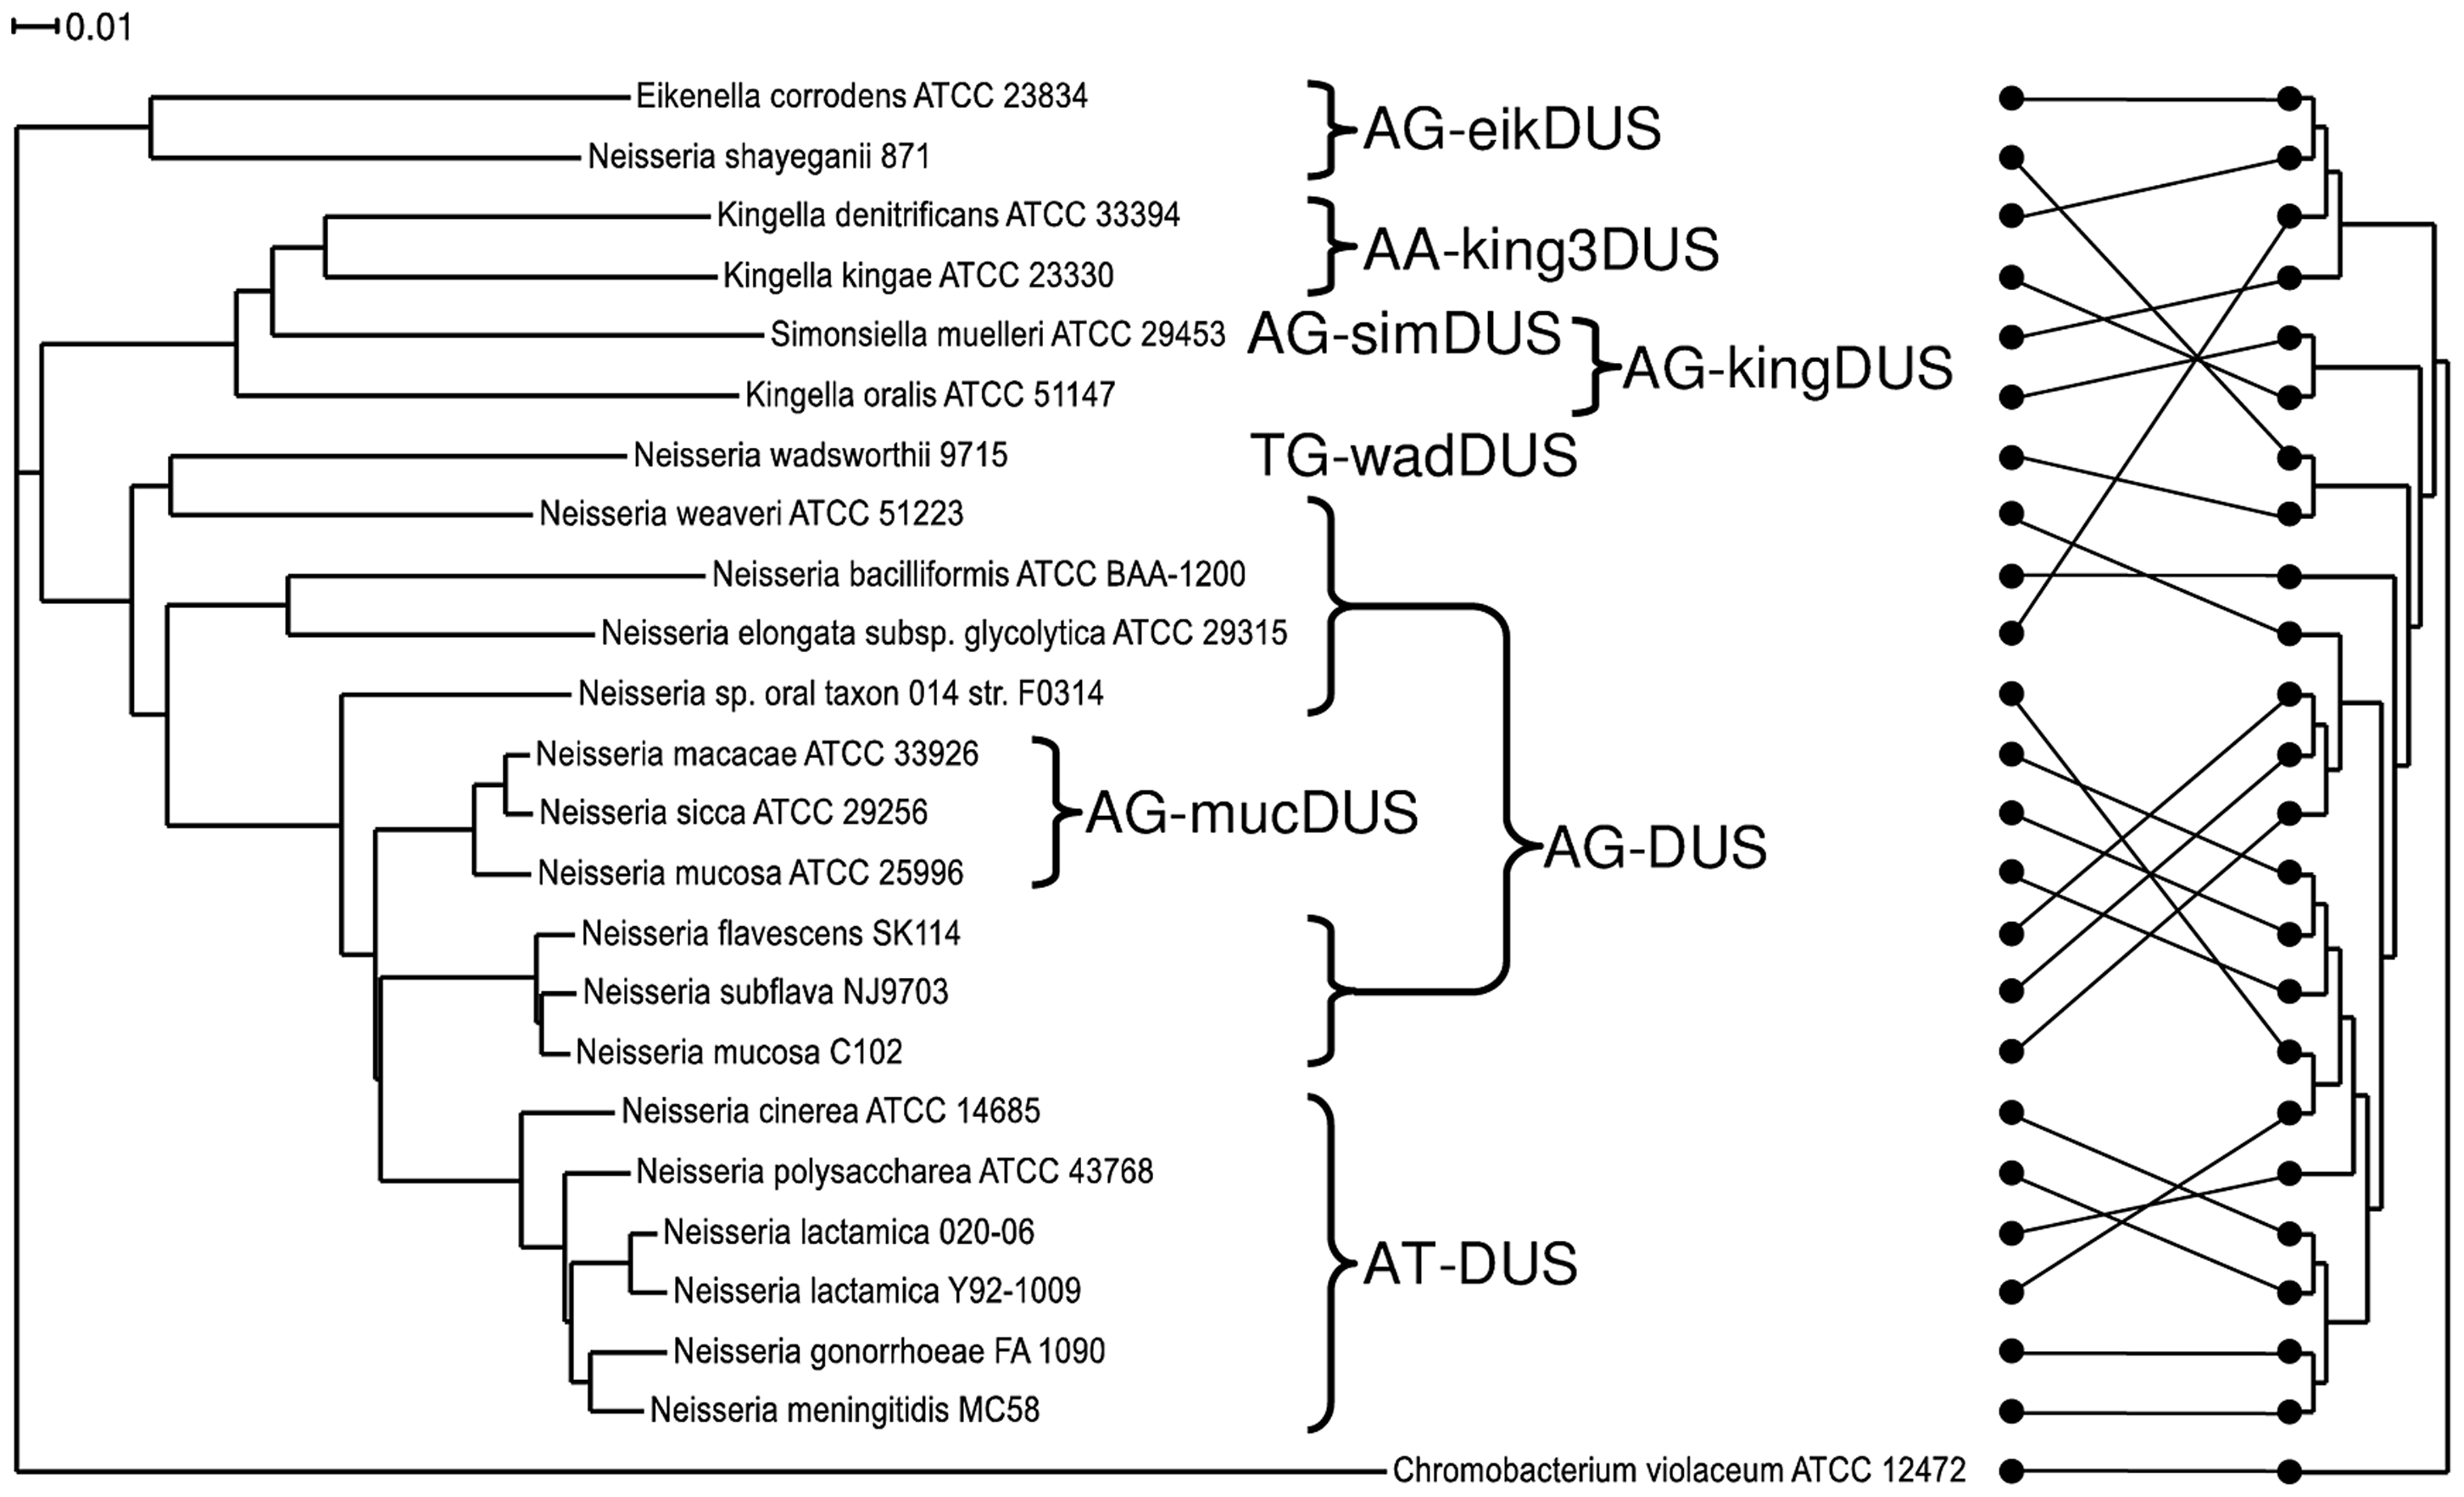 Phylogenetic tree based on the core genome and DUS dialect distribution.